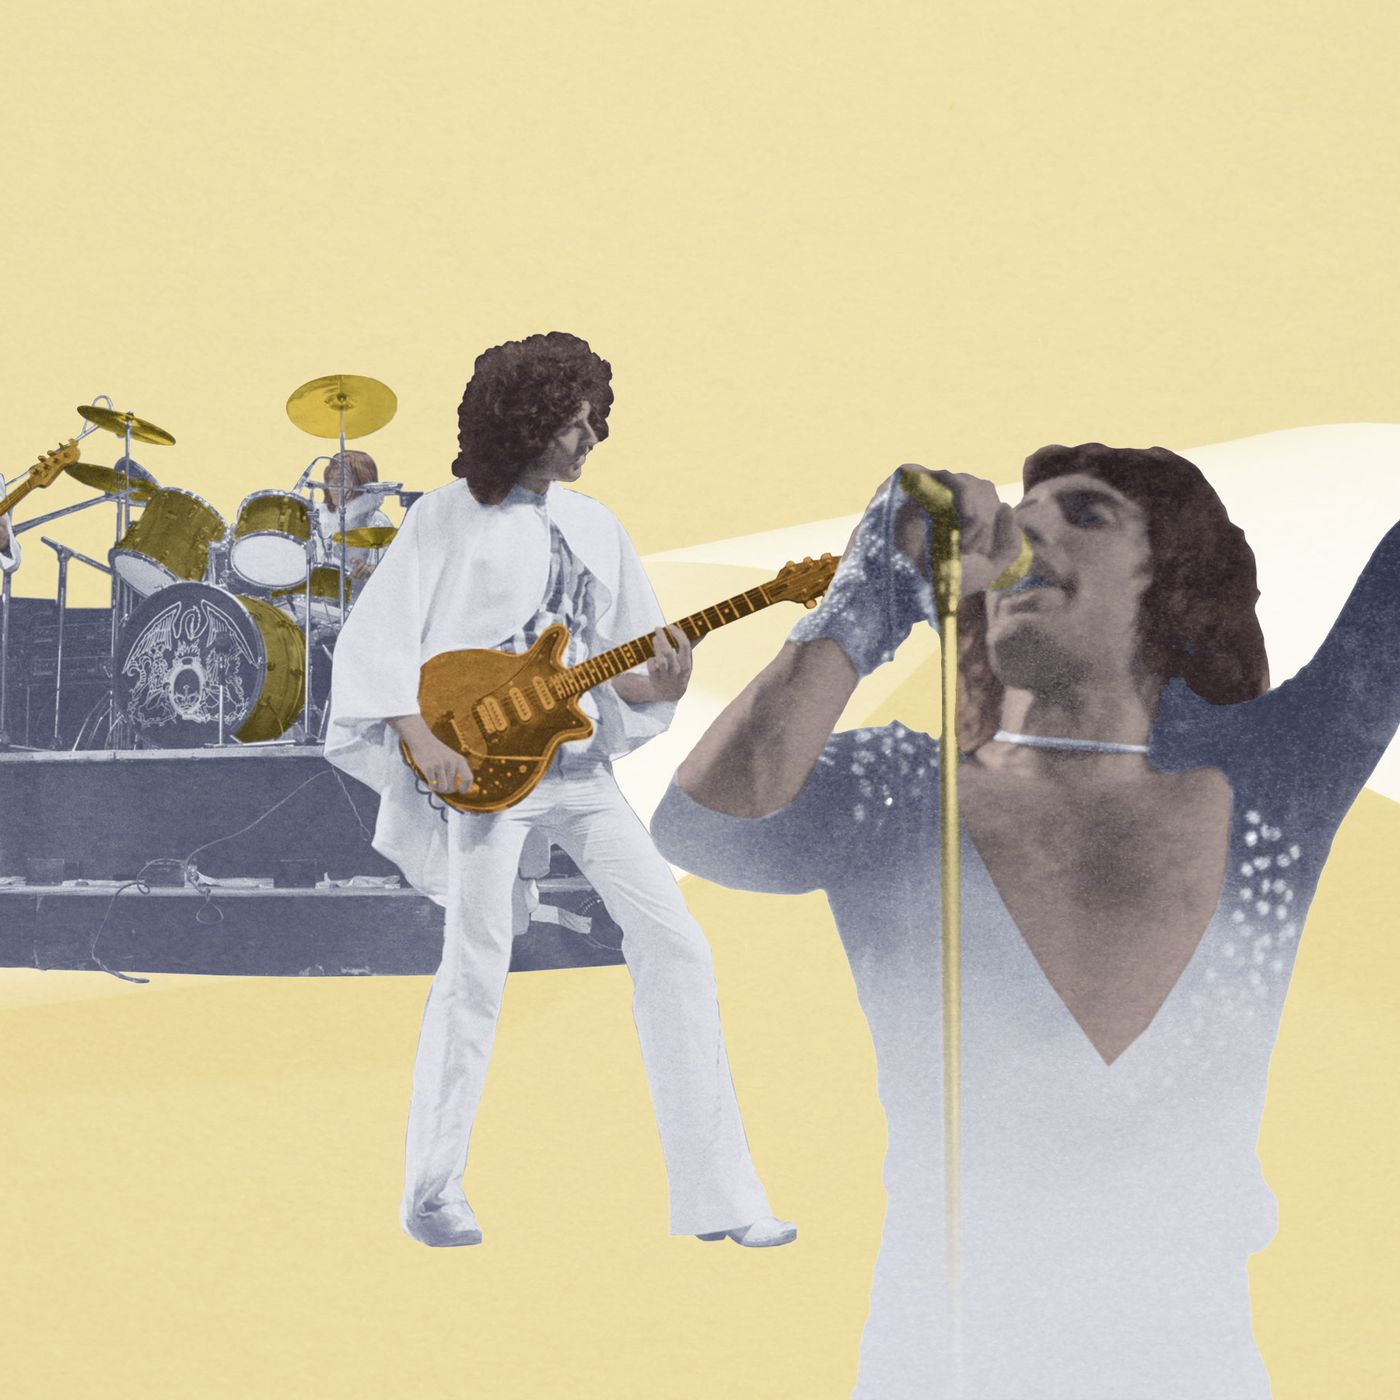 détaillant 6382e 83cc7 Everything You Ever Wanted to Know About Queen - The Ringer